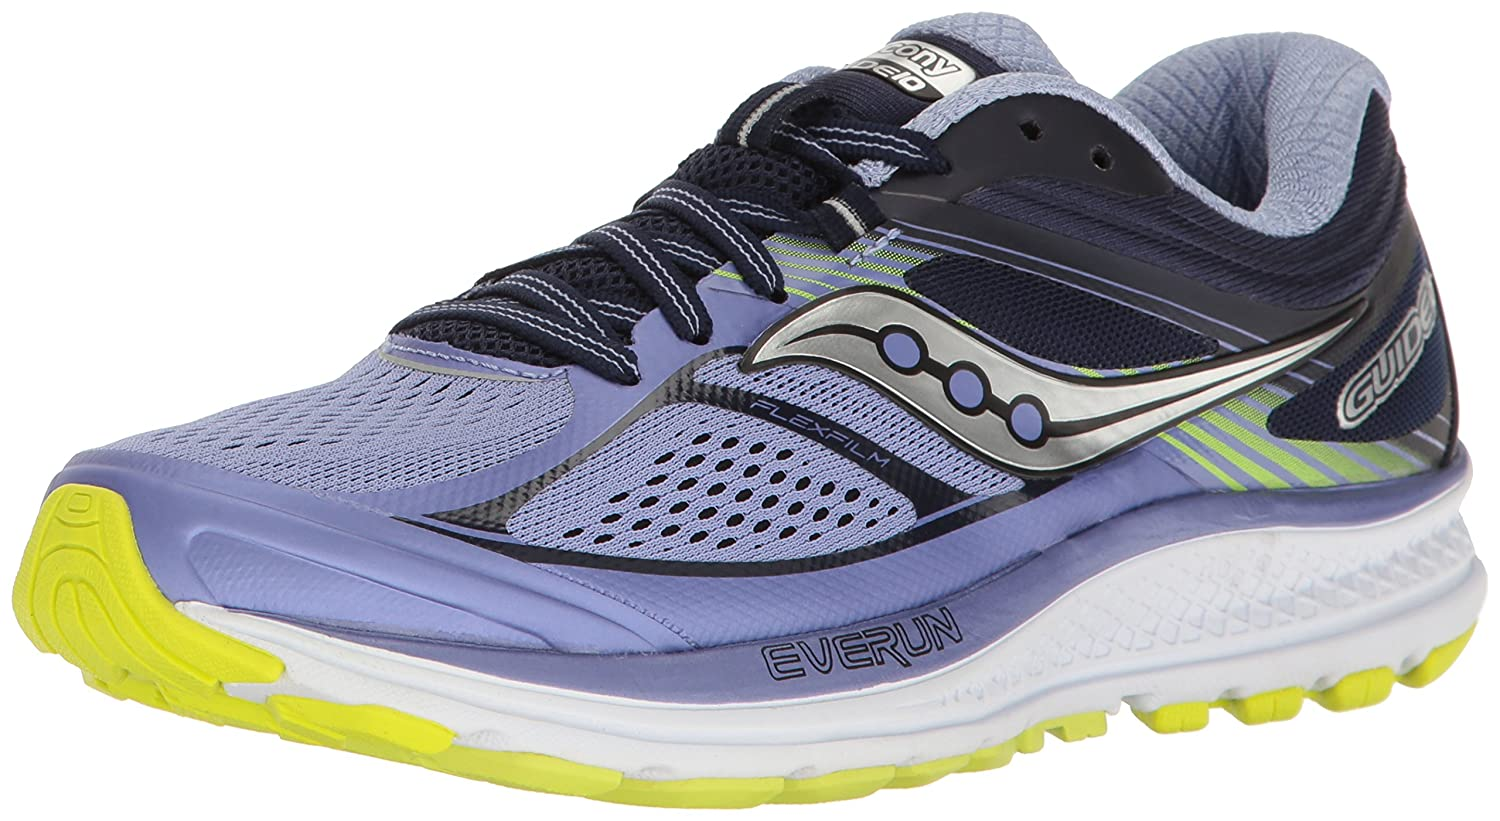 Saucony Women's Guide 10 Running Shoe B01N9KCJWZ 5.5 B(M) US|Purple Navy